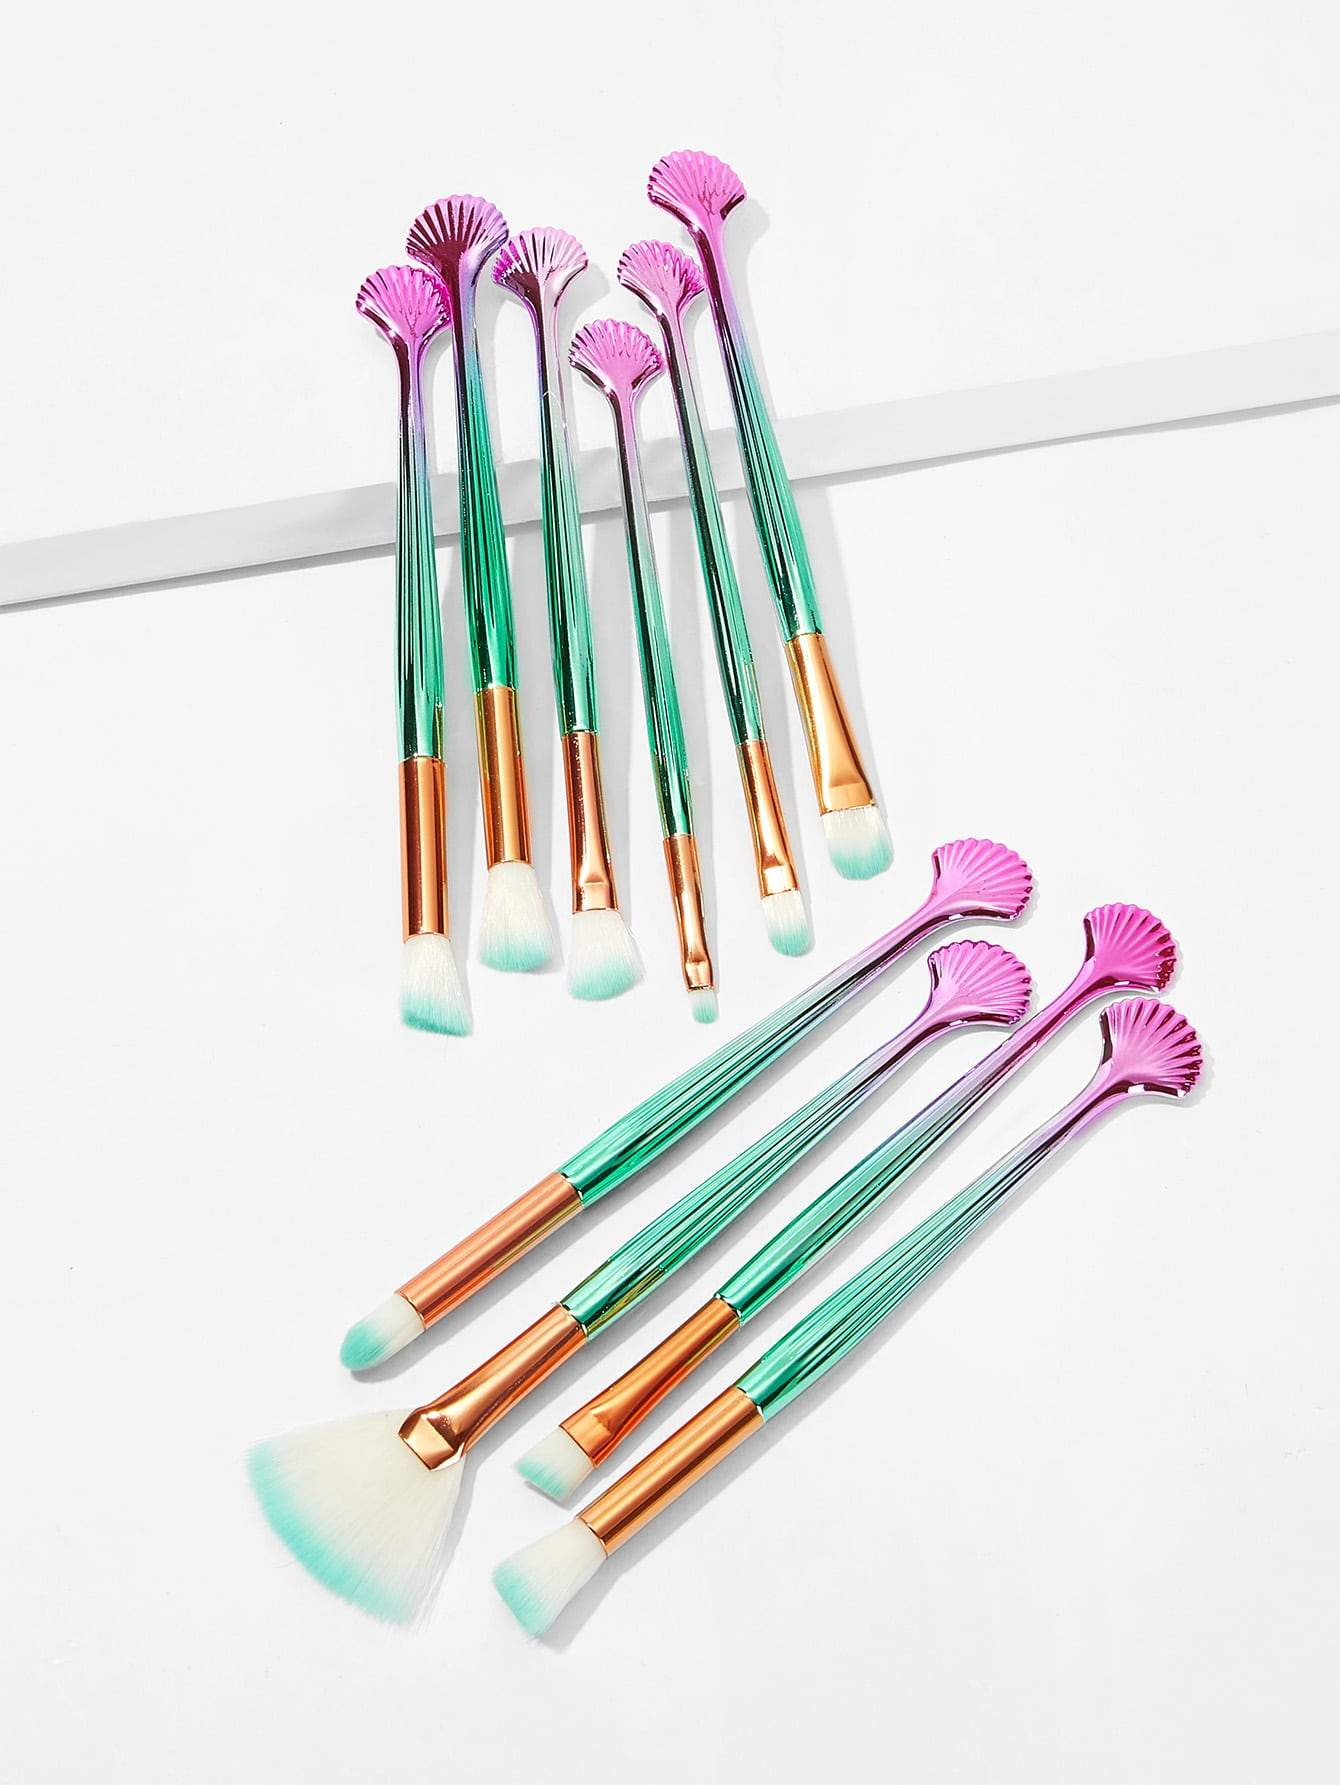 Shell Shaped Handle Makeup Brush 10pack Makeup brushes